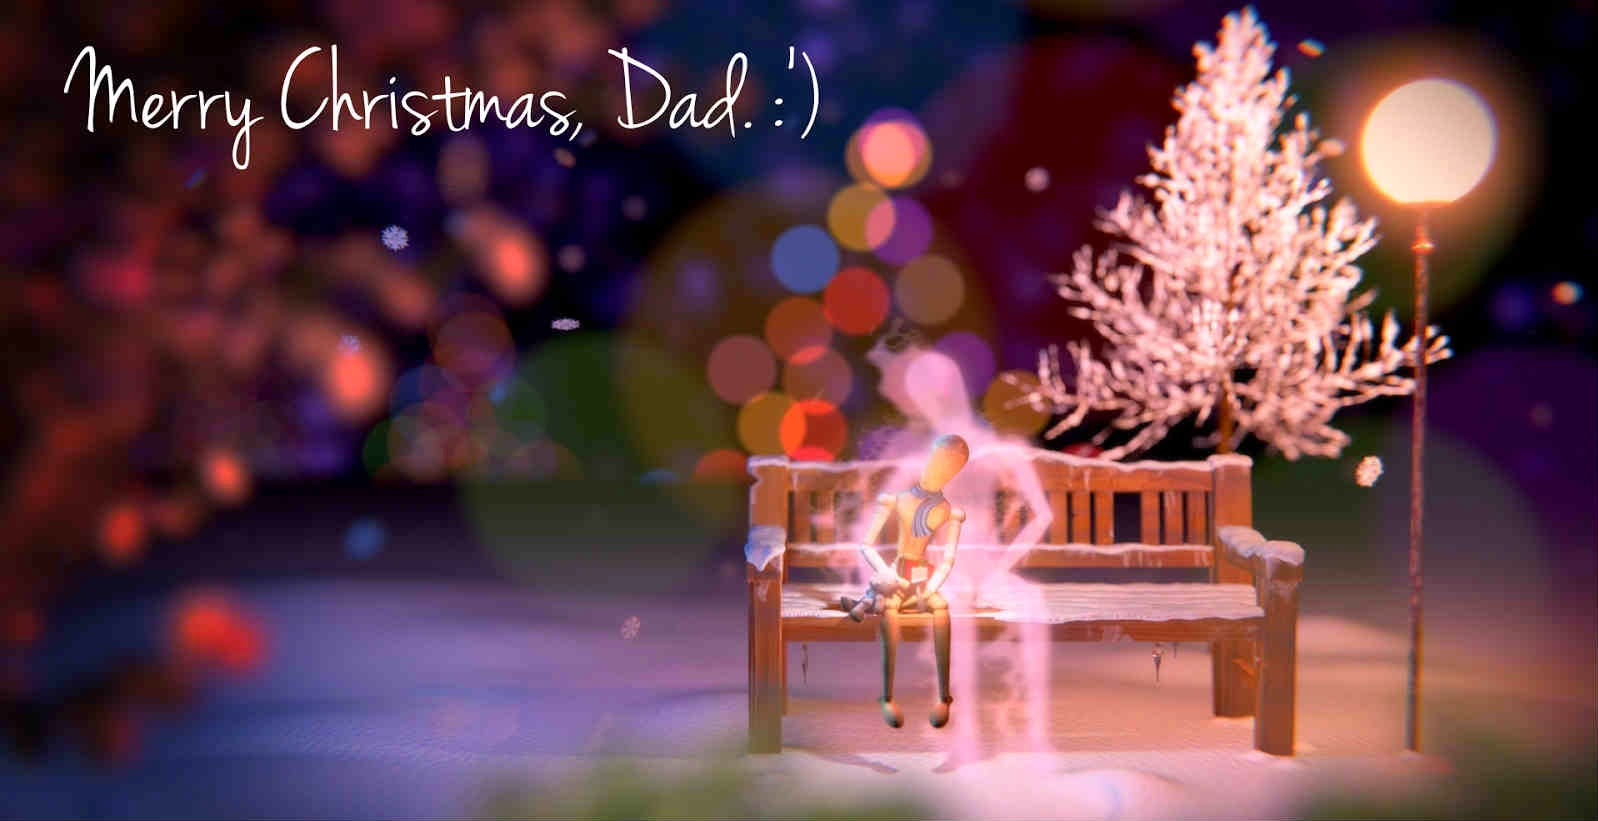 Christmas Wishes Greetings Christmas Wallpapers Best Christmas 2014 ...